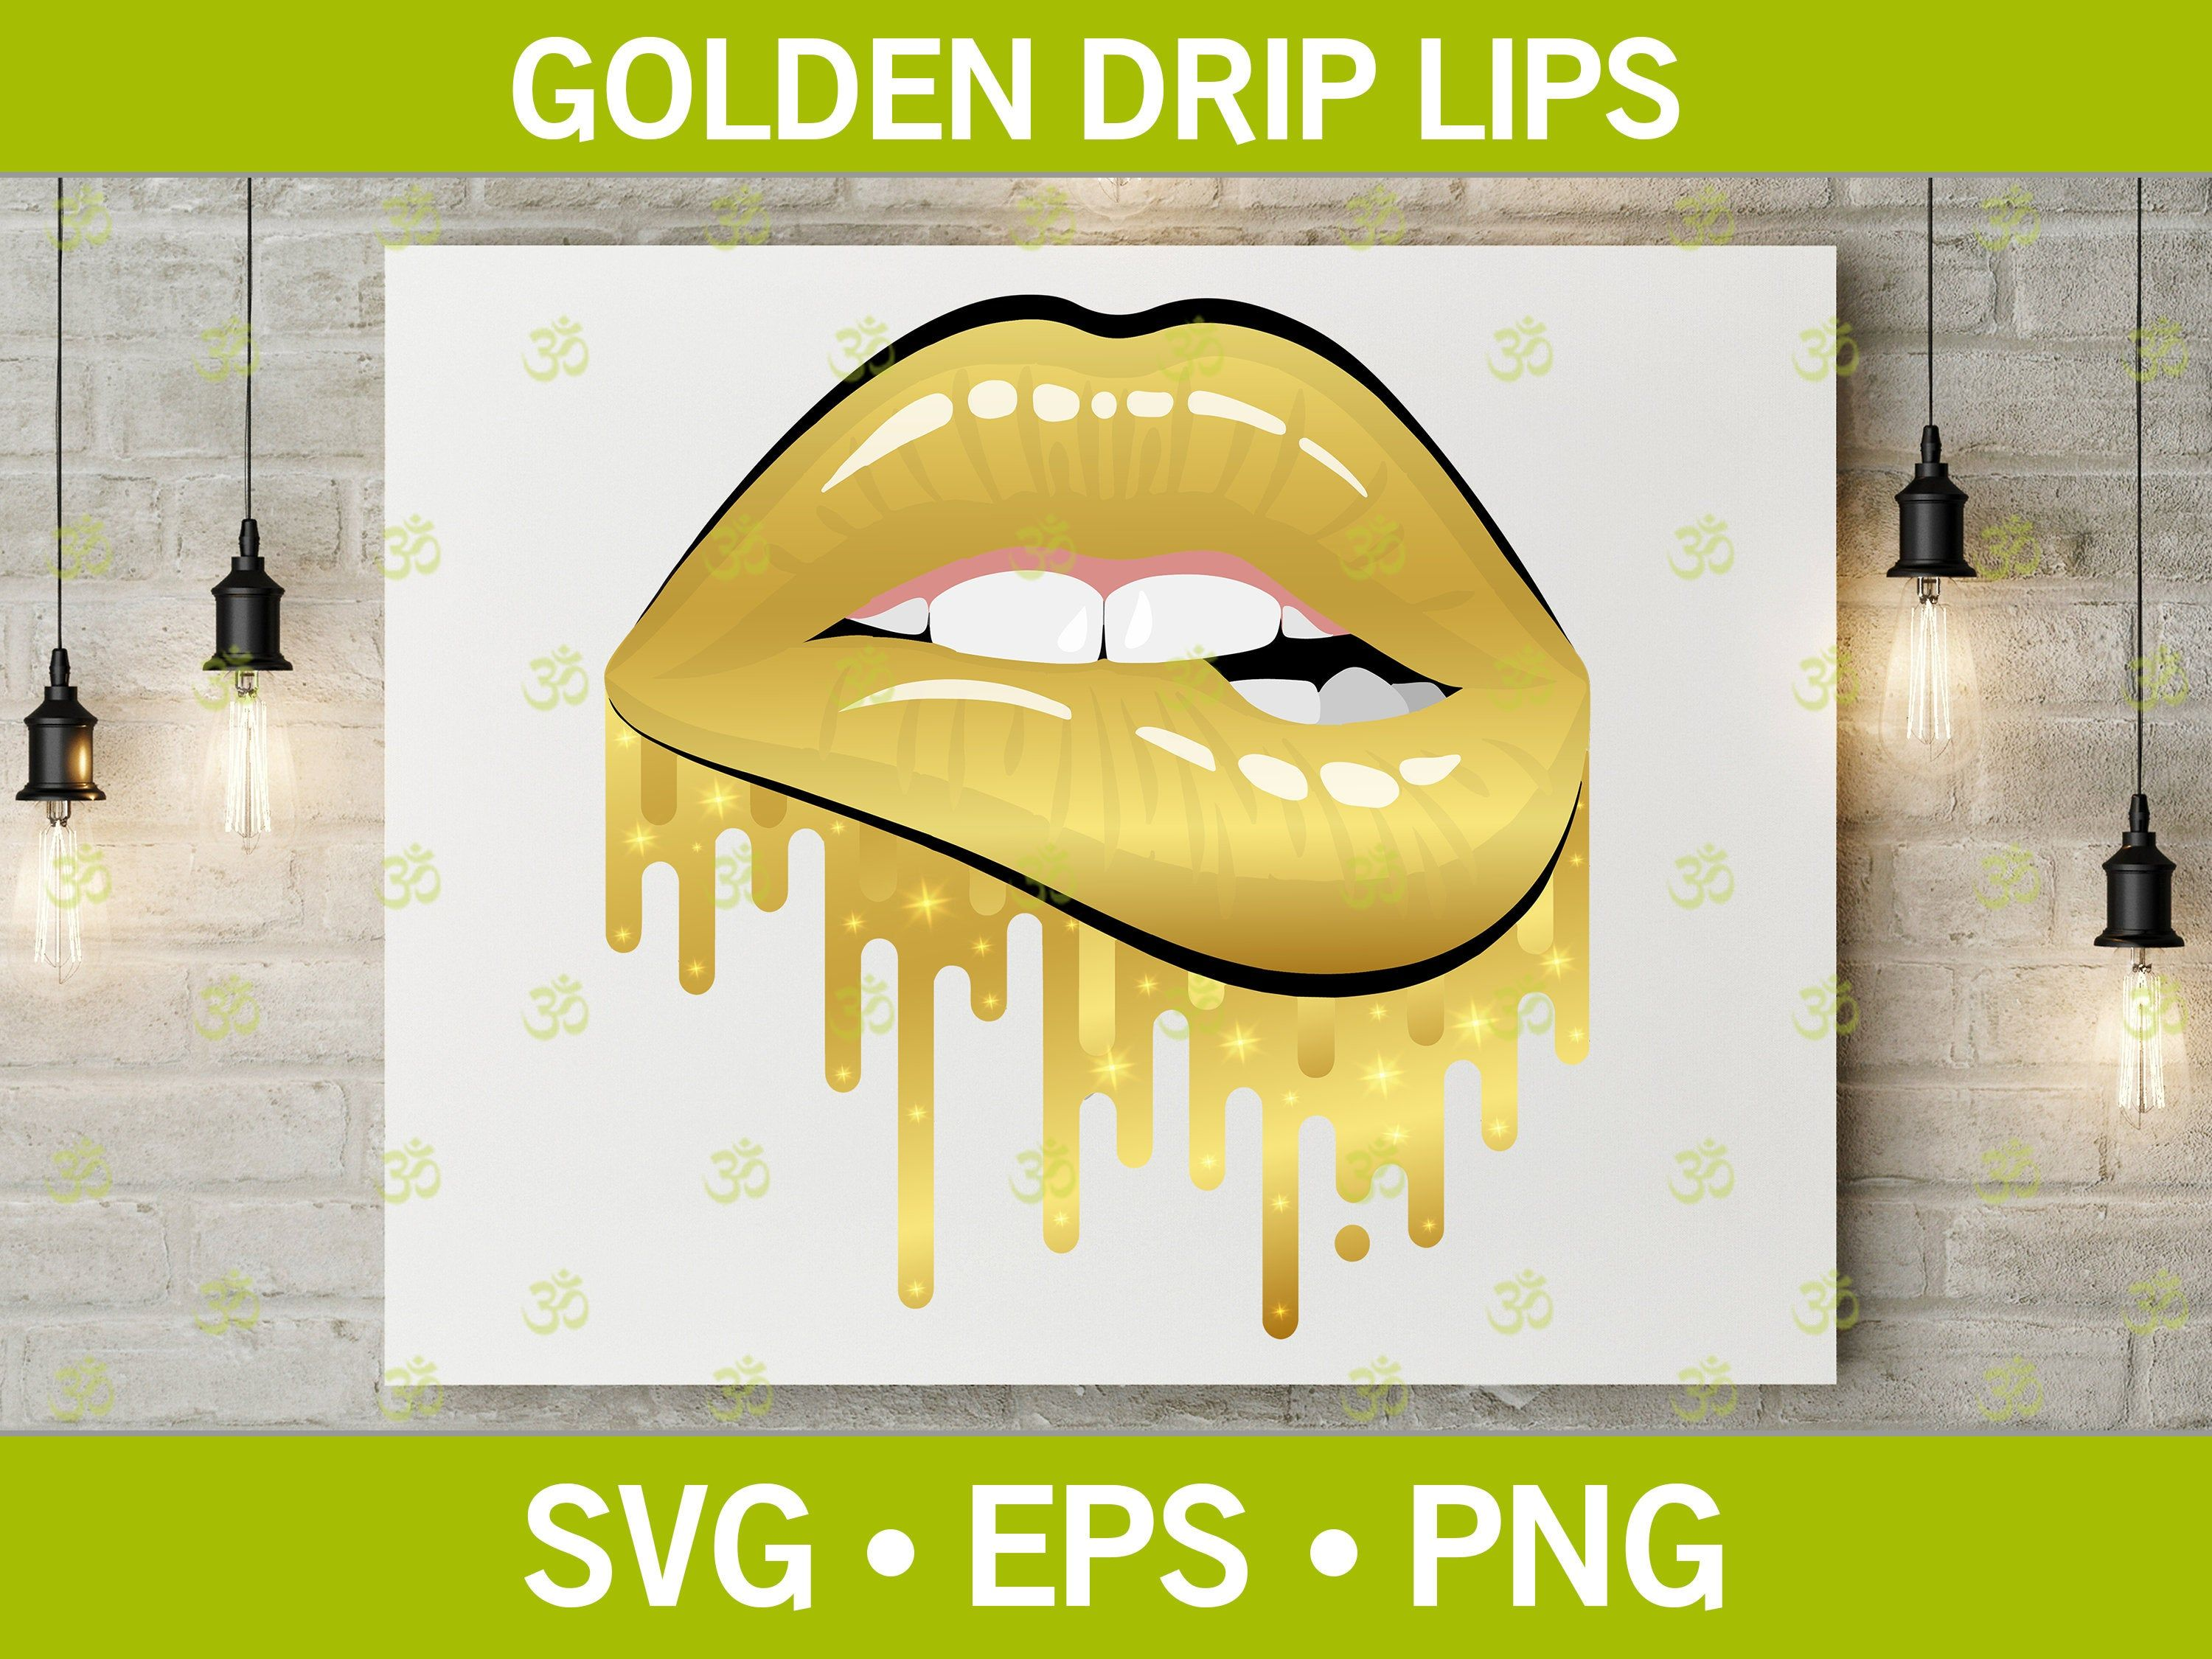 Pin on SVG, EPS, PNG Files on Etsy